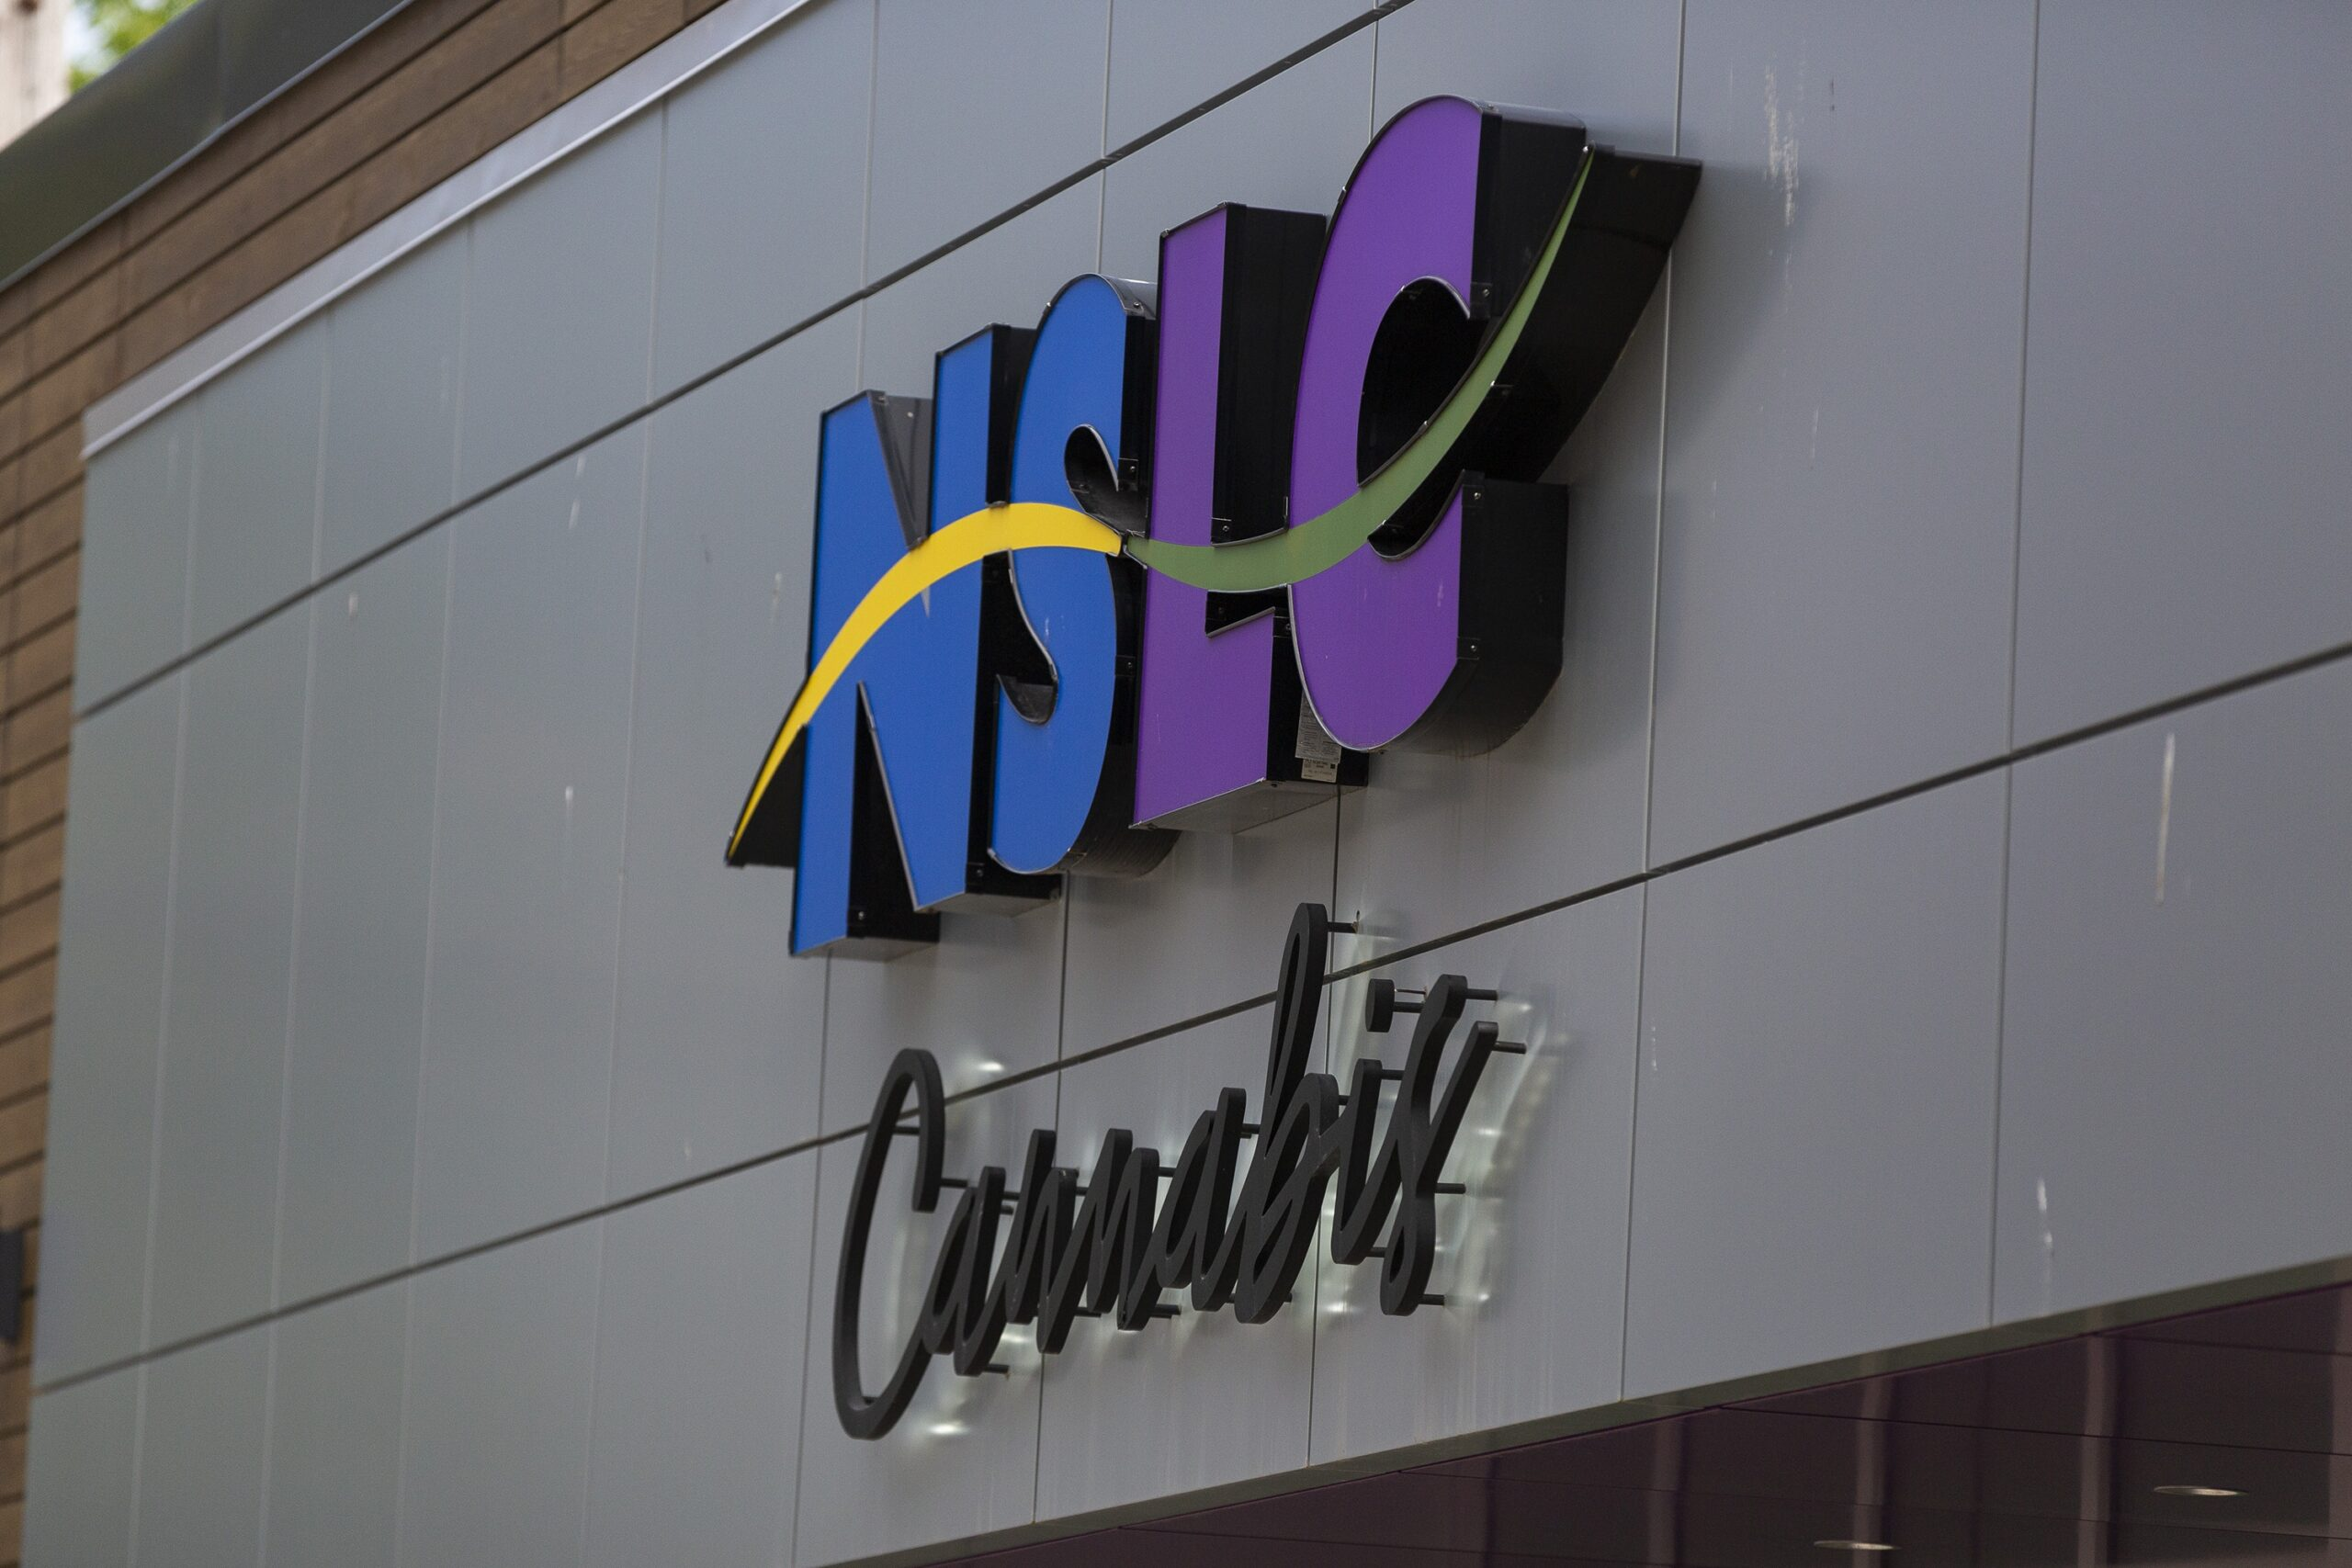 The sign on the outside of the NSLC Cannabis store on Clyde Street in Halifax in June 2021. The NSLC Logo is capital letters in blue and purple, with a yellow and green wave running over the centre. Below that, Cannabis is in black cursive text, set out from the building's surface.